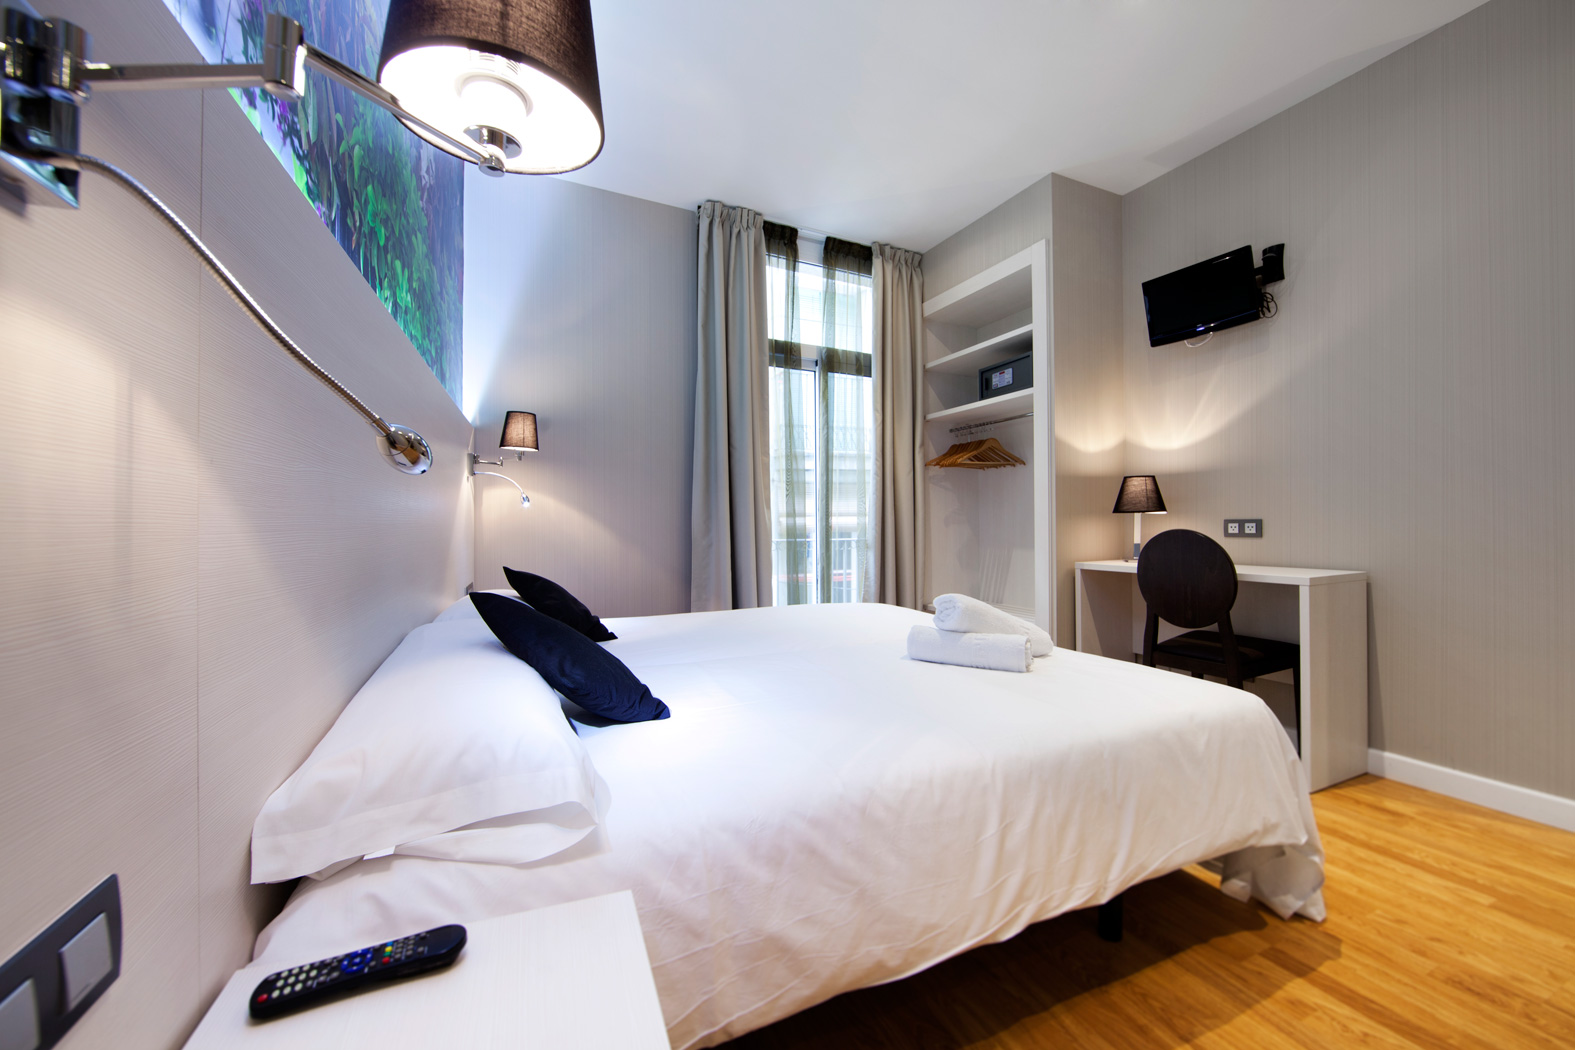 How To Soundproof Your Hotel Room